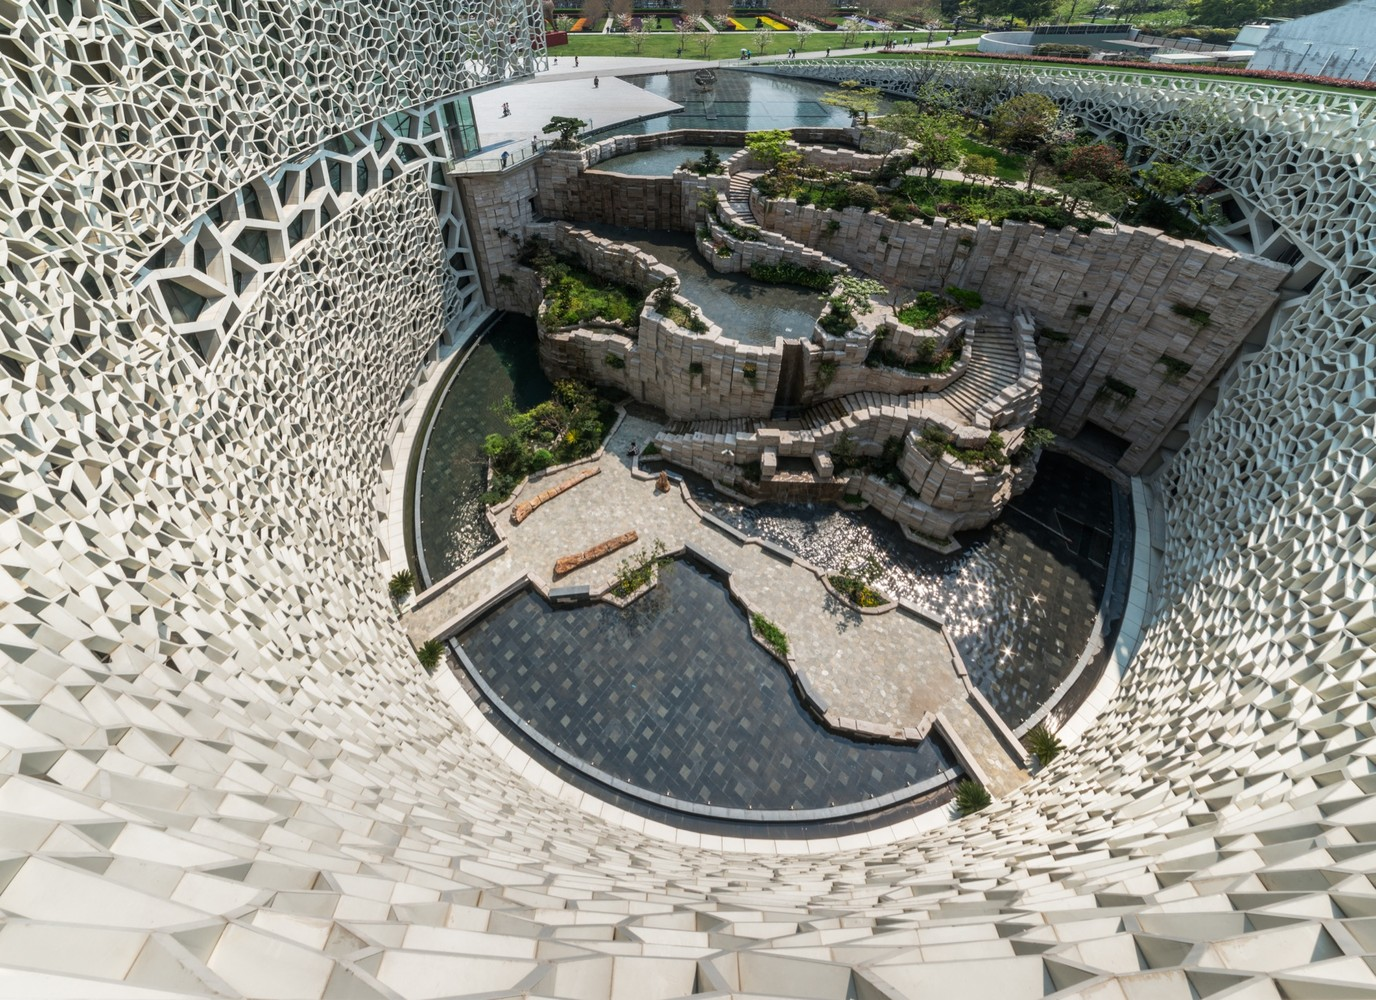 Shanghai Natural History Museum / Perkins+Will